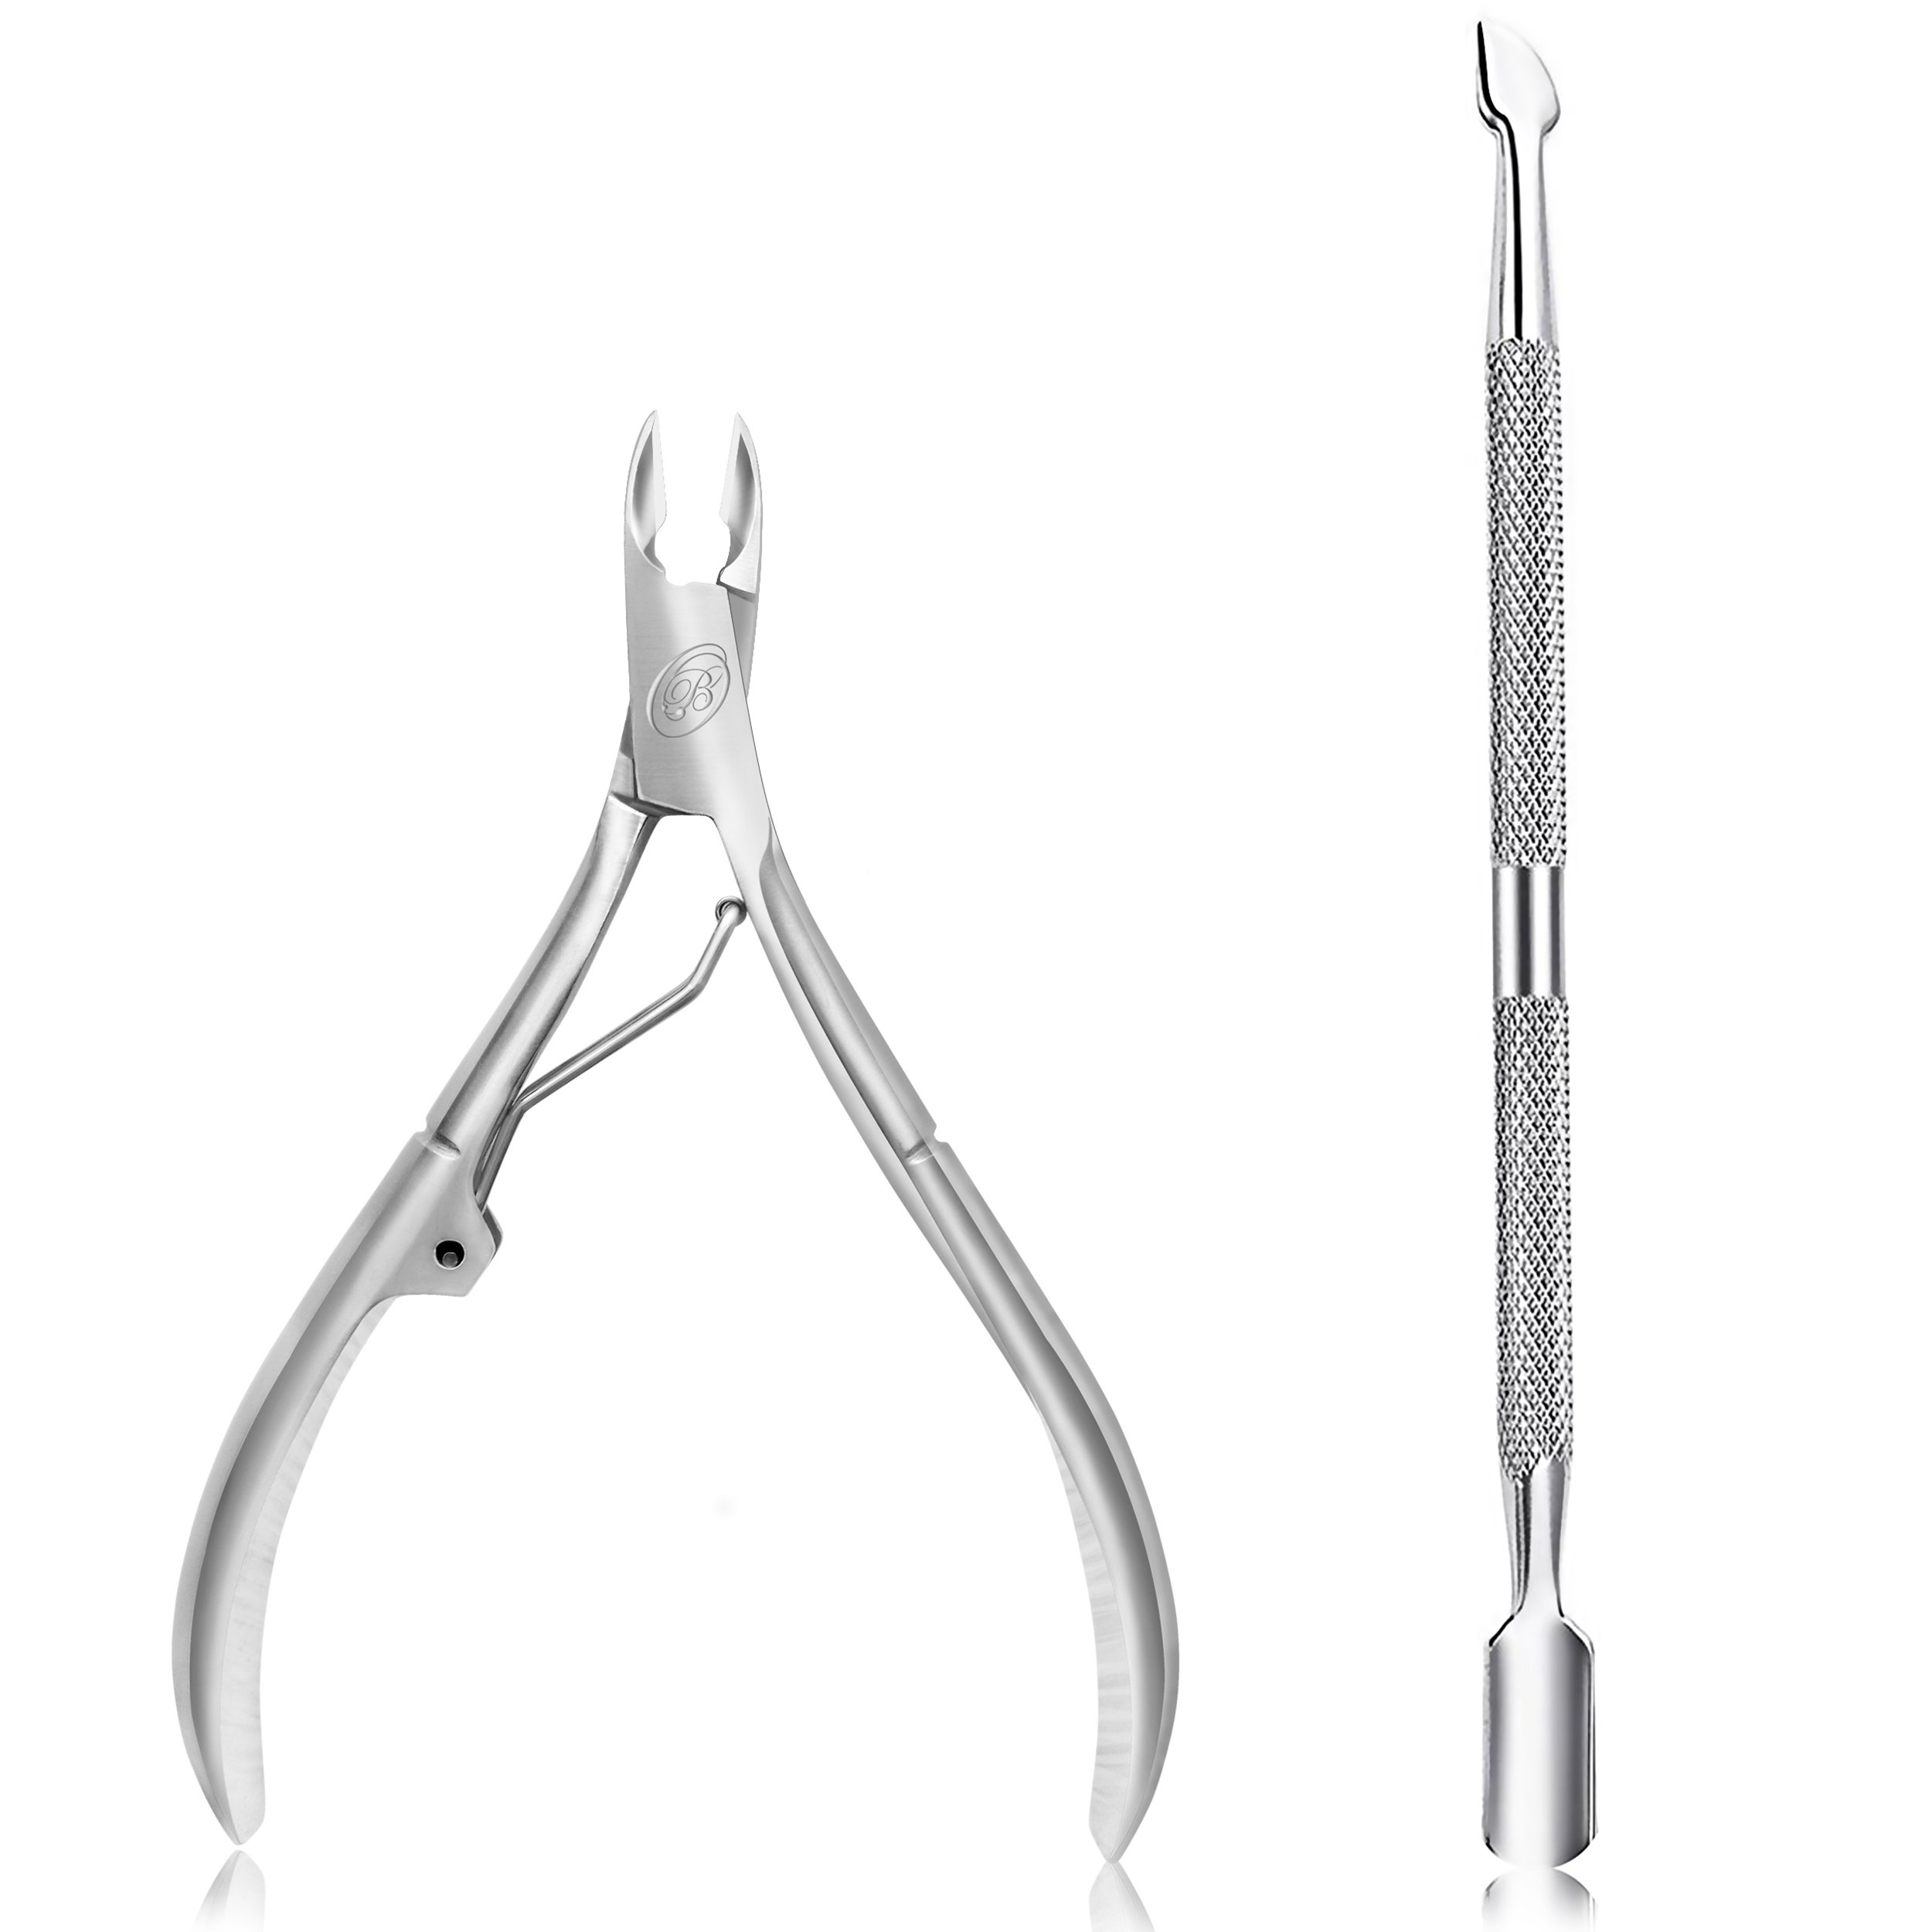 Cuticle Nipper with Cuticle Pusher-Professional Grade Stainless Steel Cuticle Remover & Cutter-Durable Manicure and Pedicure Tool-Beauty Tool Perfect for Fingernails and Toenails (Silver)